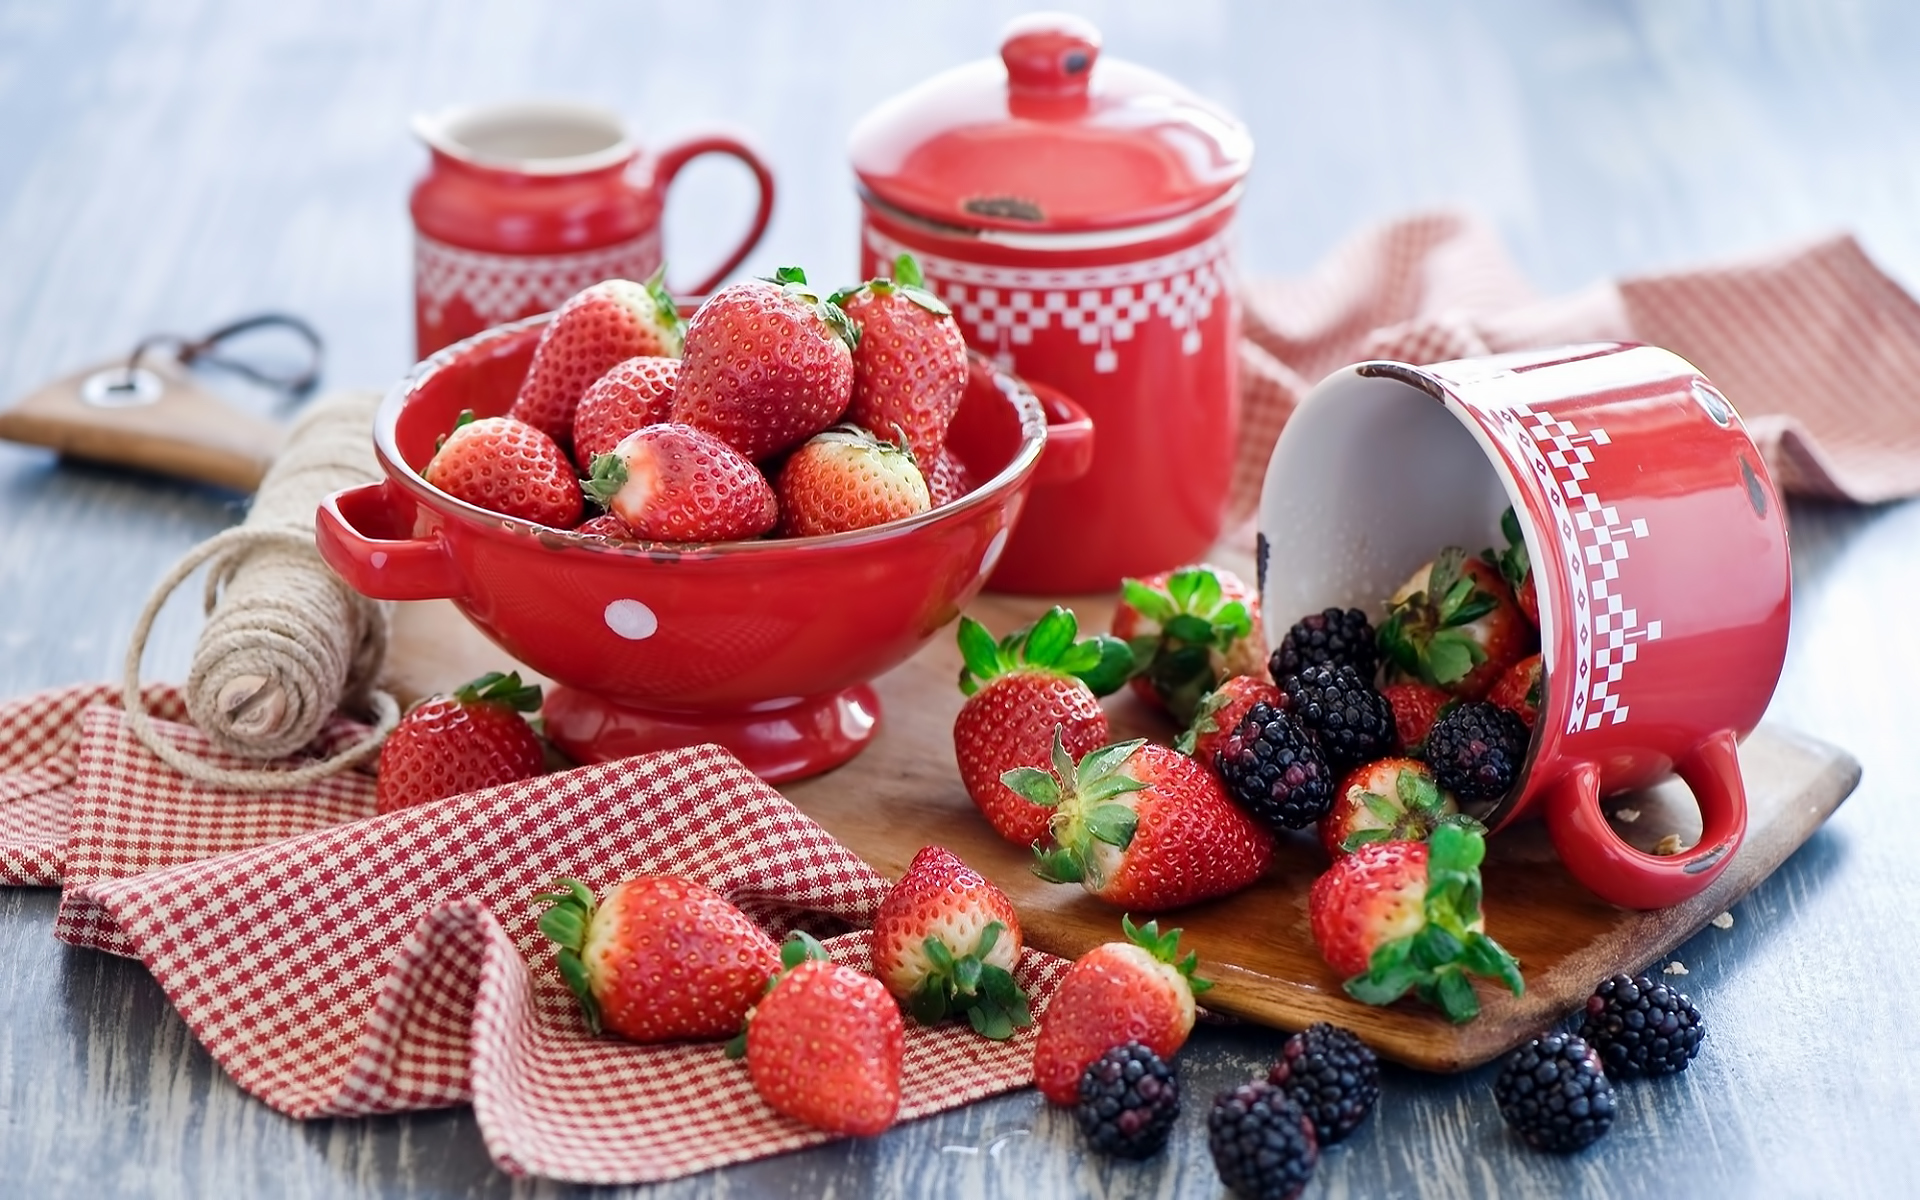 46173 download wallpaper Food, Berries screensavers and pictures for free